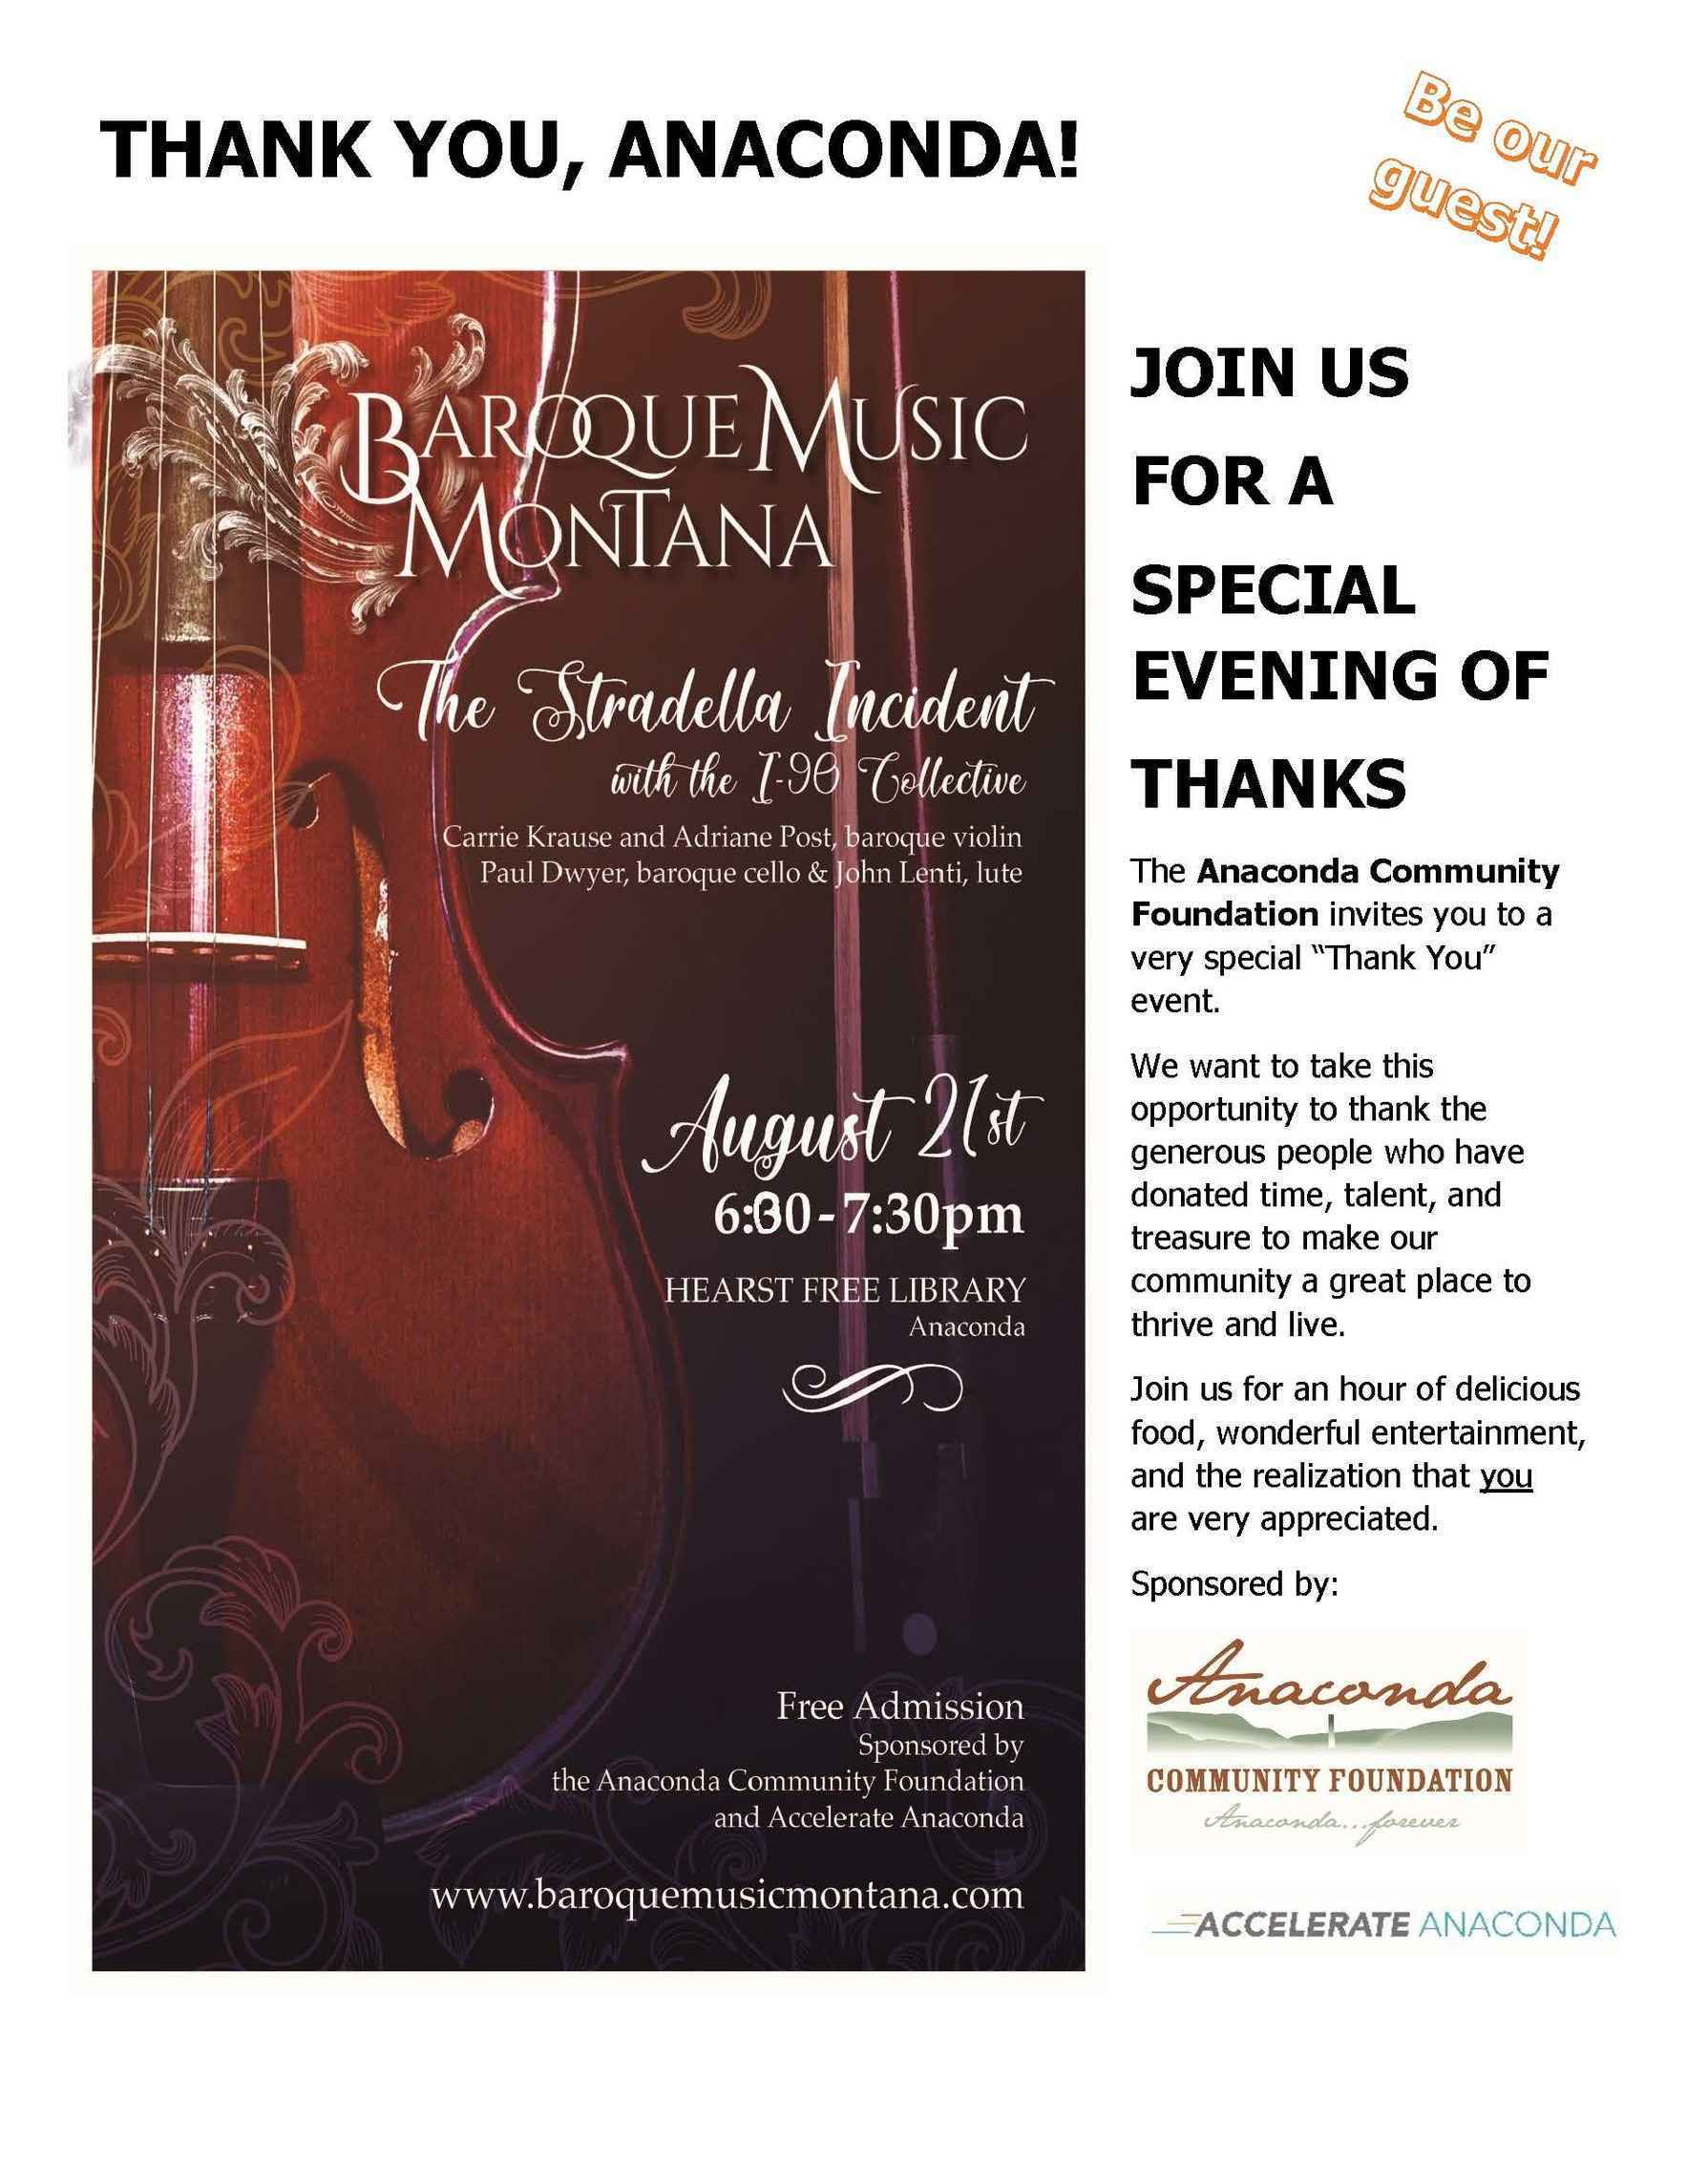 Baroque Music Montana: A Thank You Event image